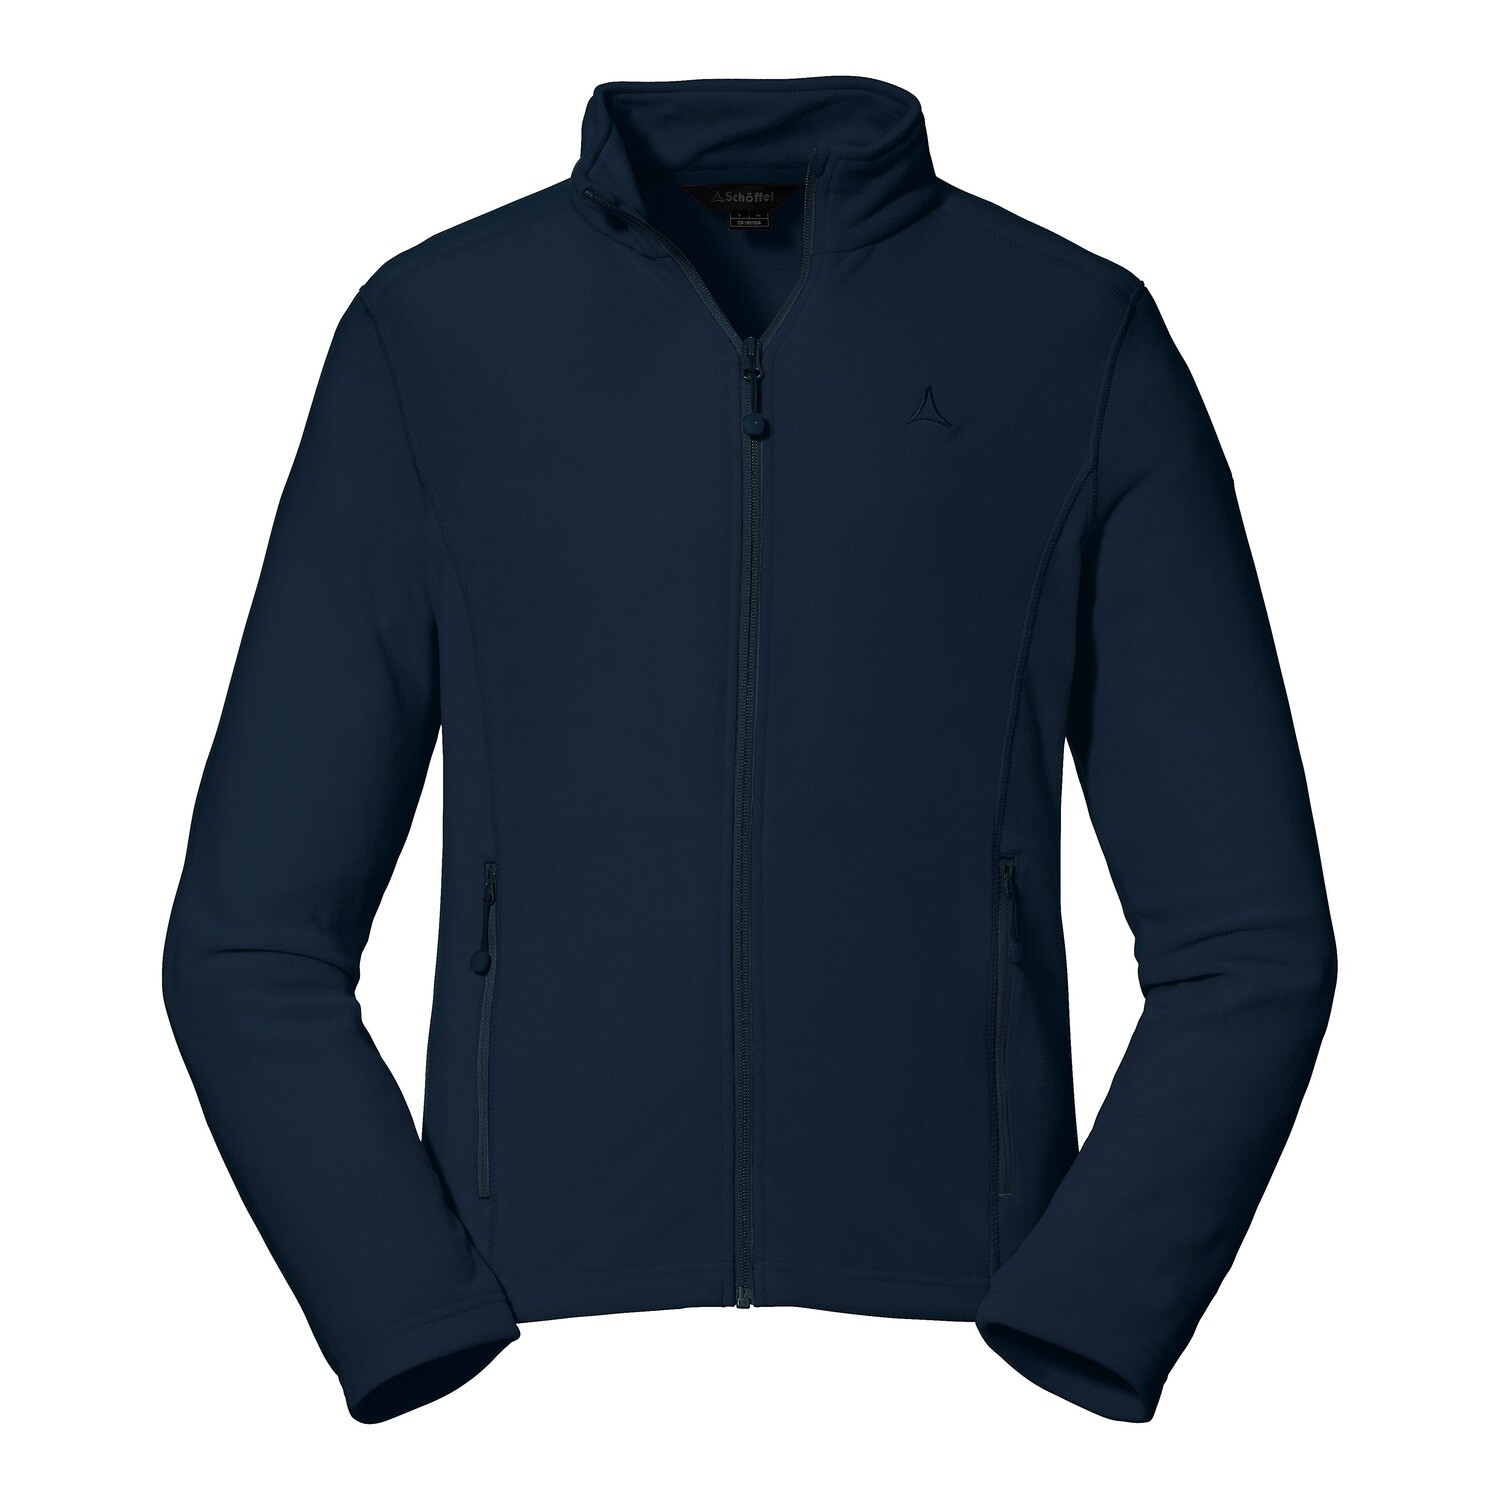 SCHÖFFEL Cincinnati2 Fleece Jacket